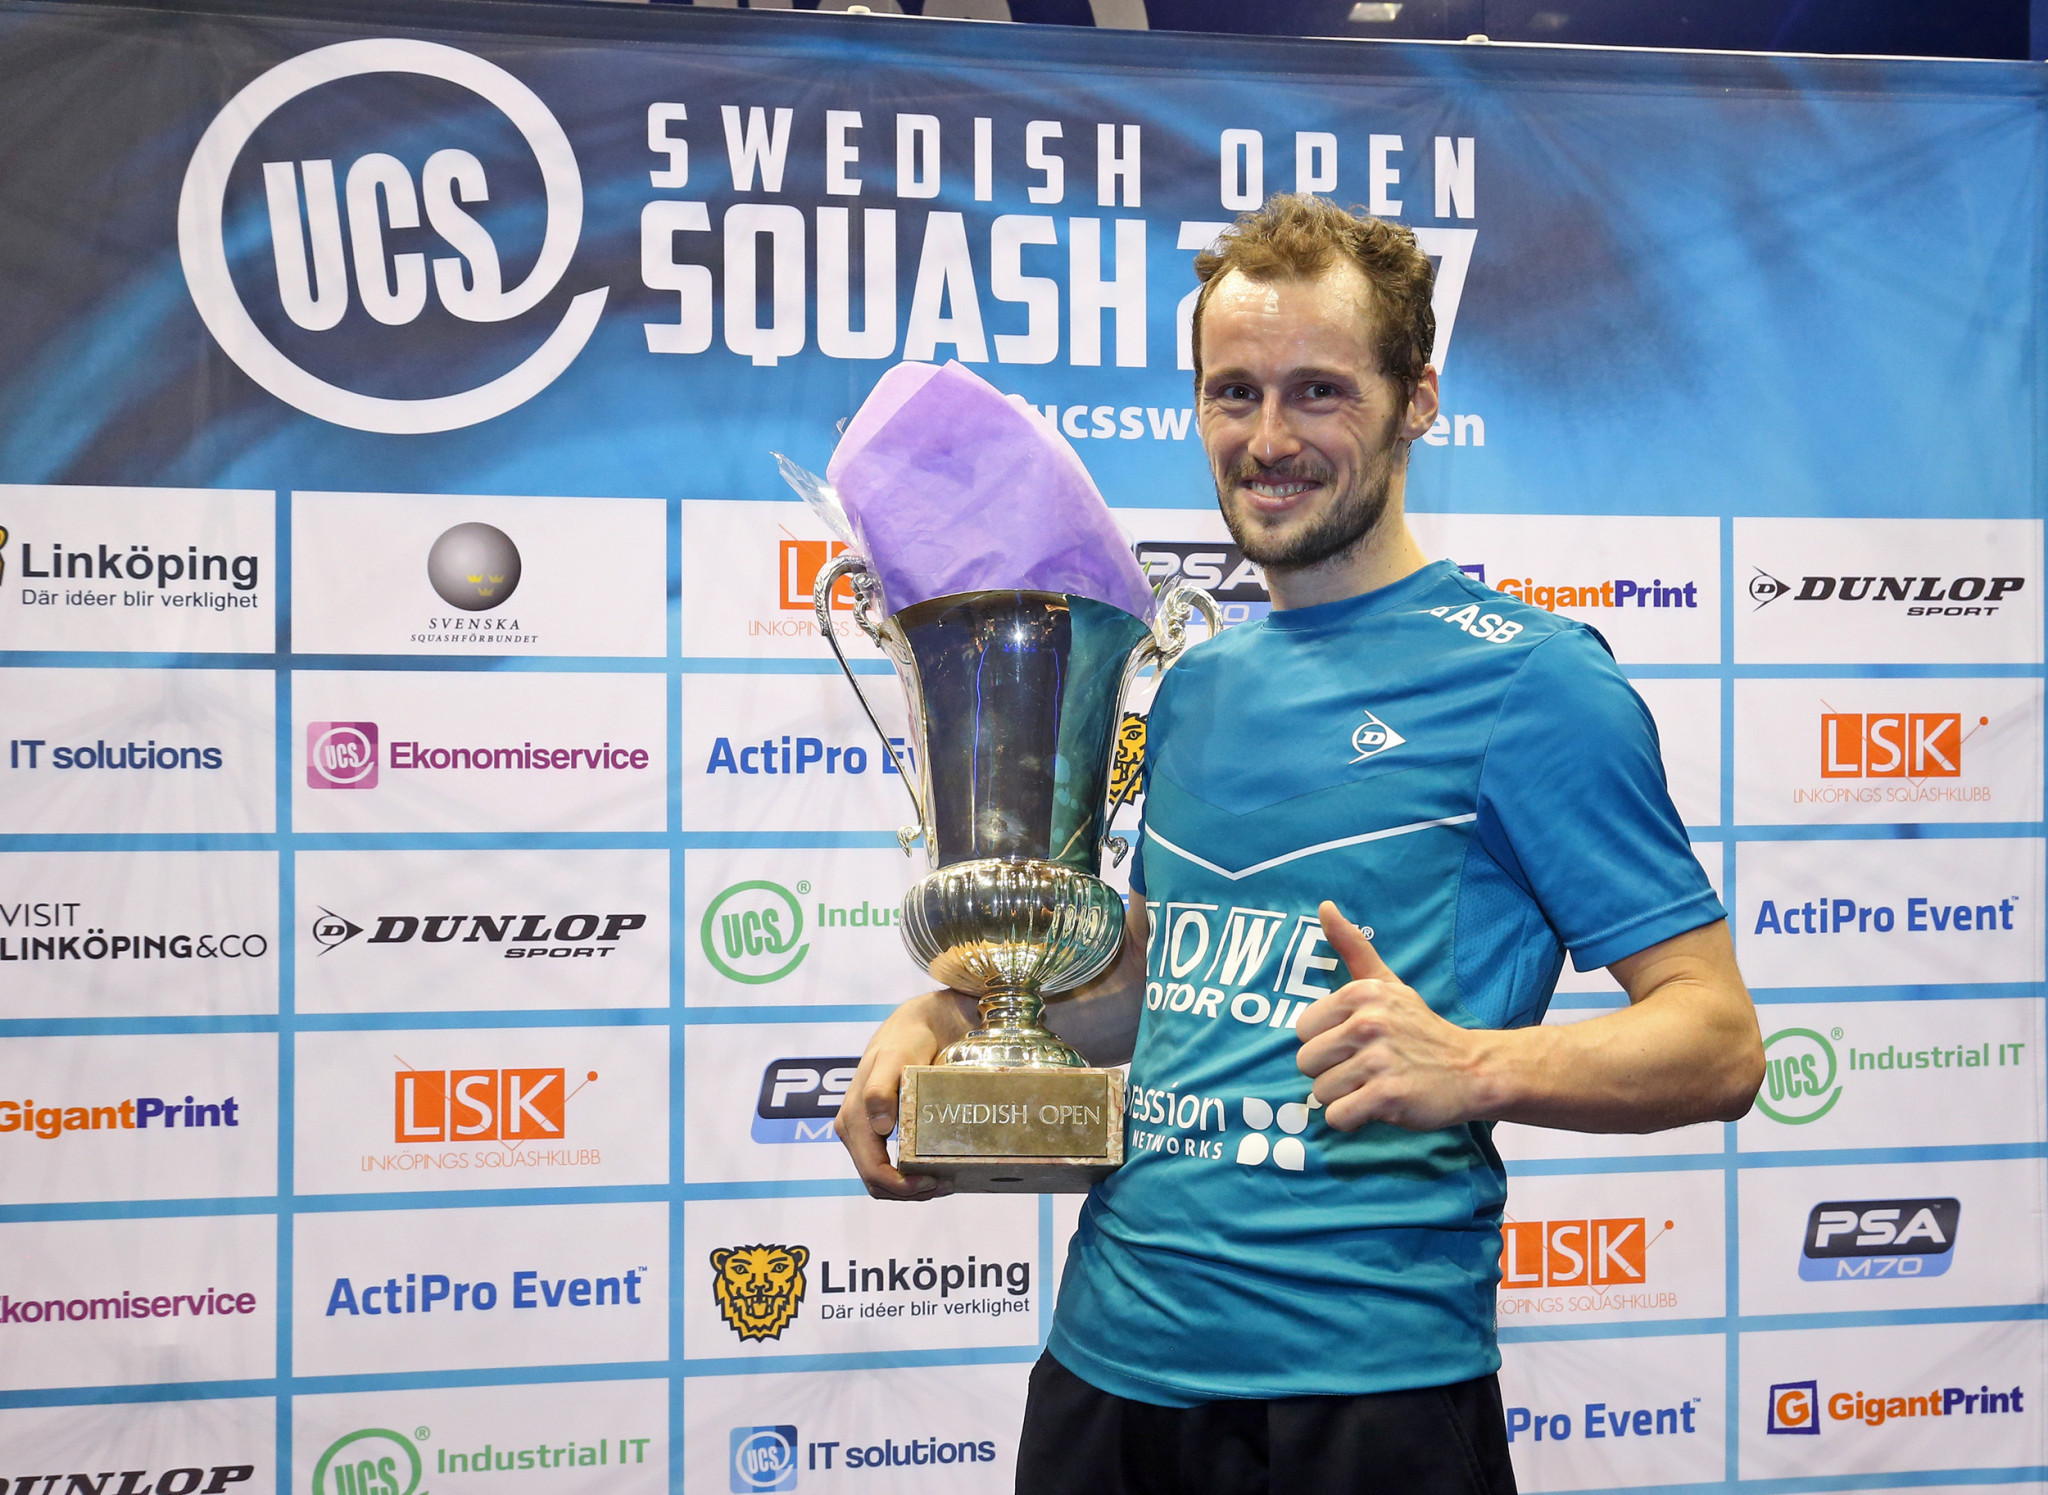 Gaultier to begin PSA Swedish Open title defence with match against compatriot Castagnet